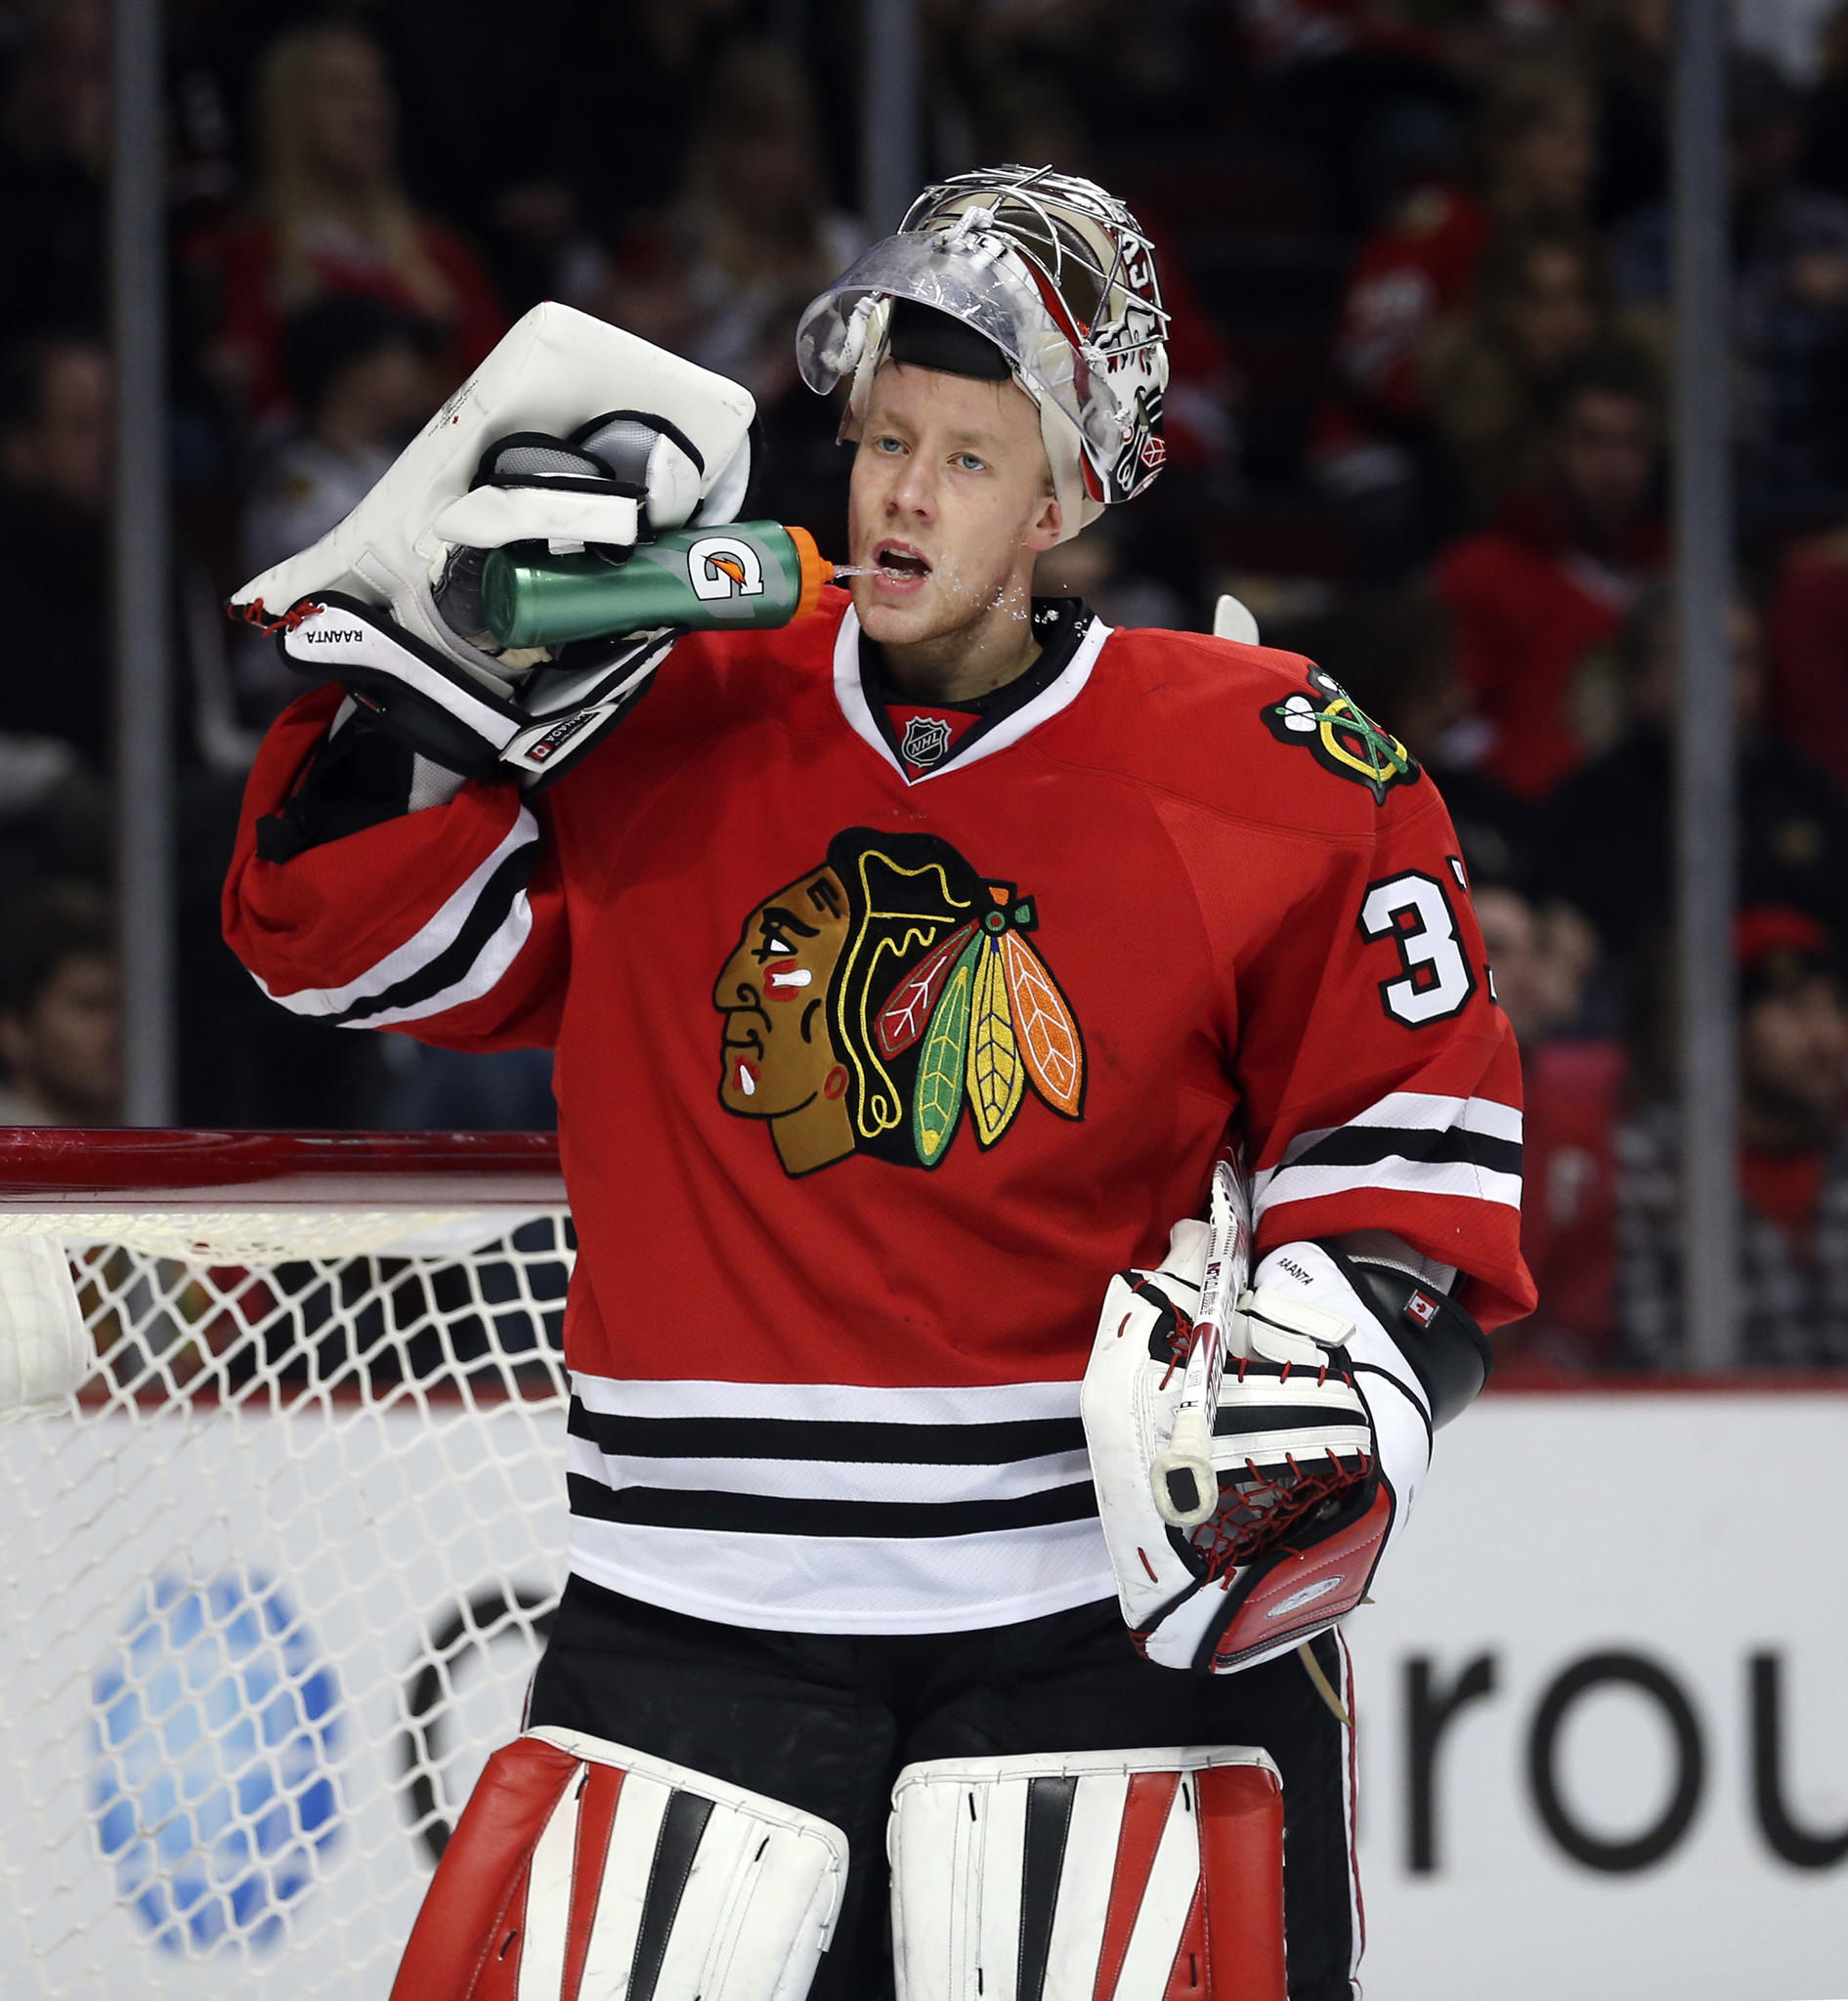 Chicago Blackhawks goalie Antti Raanta (31), during his team's game against the Los Angeles Kings, at the United Center.